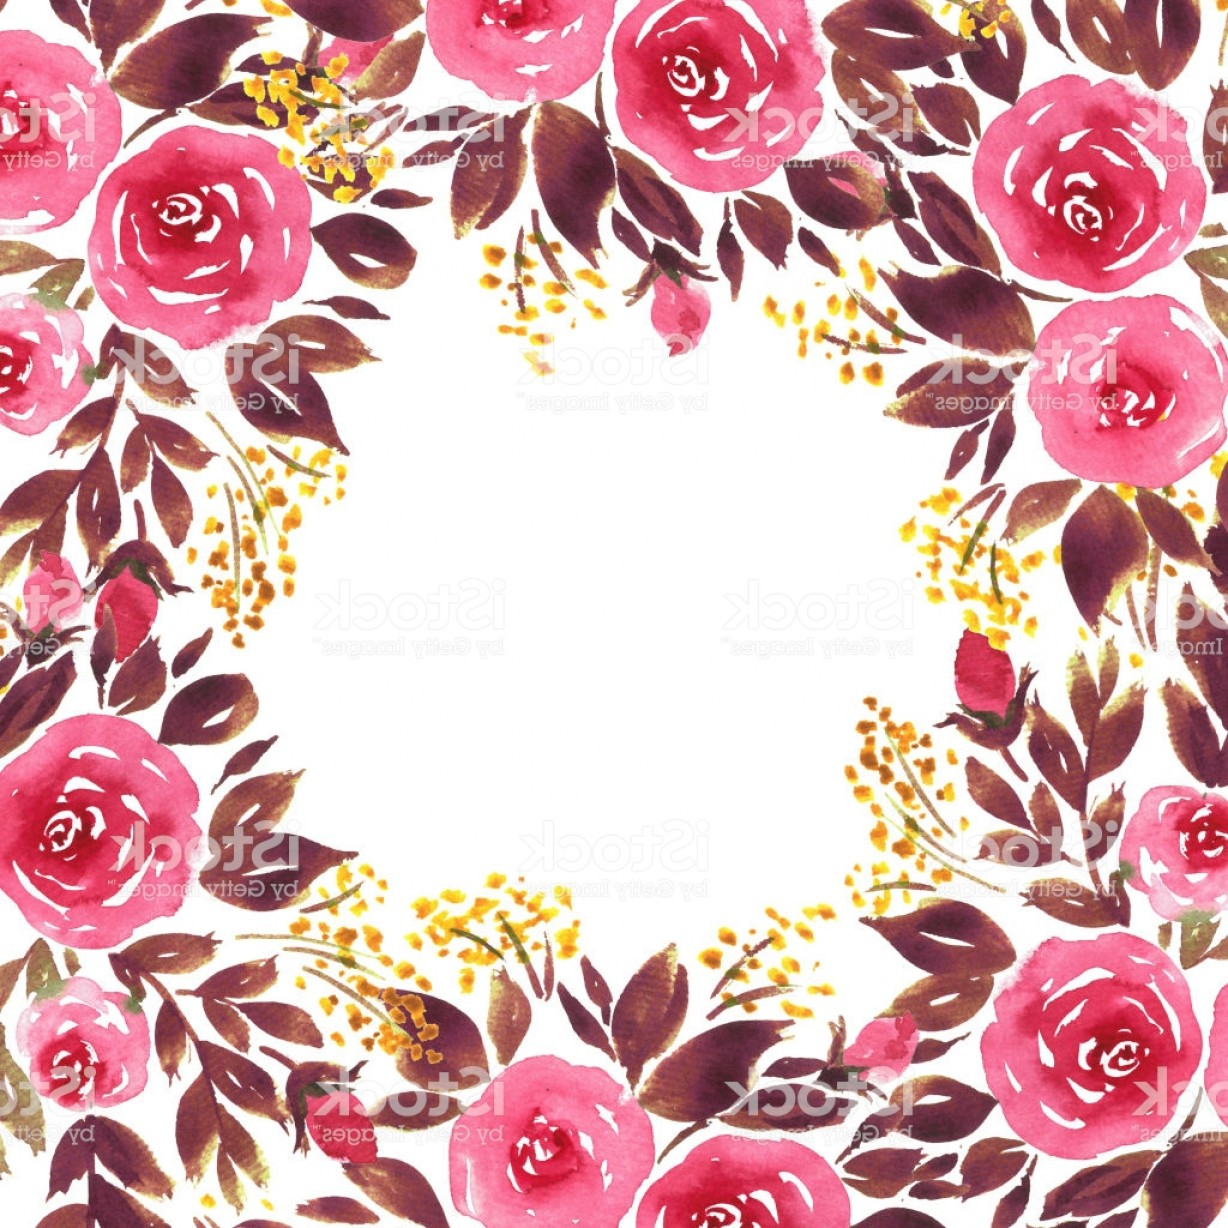 Loose Diamond Border Vector: Loose Watercolor Roses Frame Composition Of Hand Painted Flowers In Pink And Purple Gm